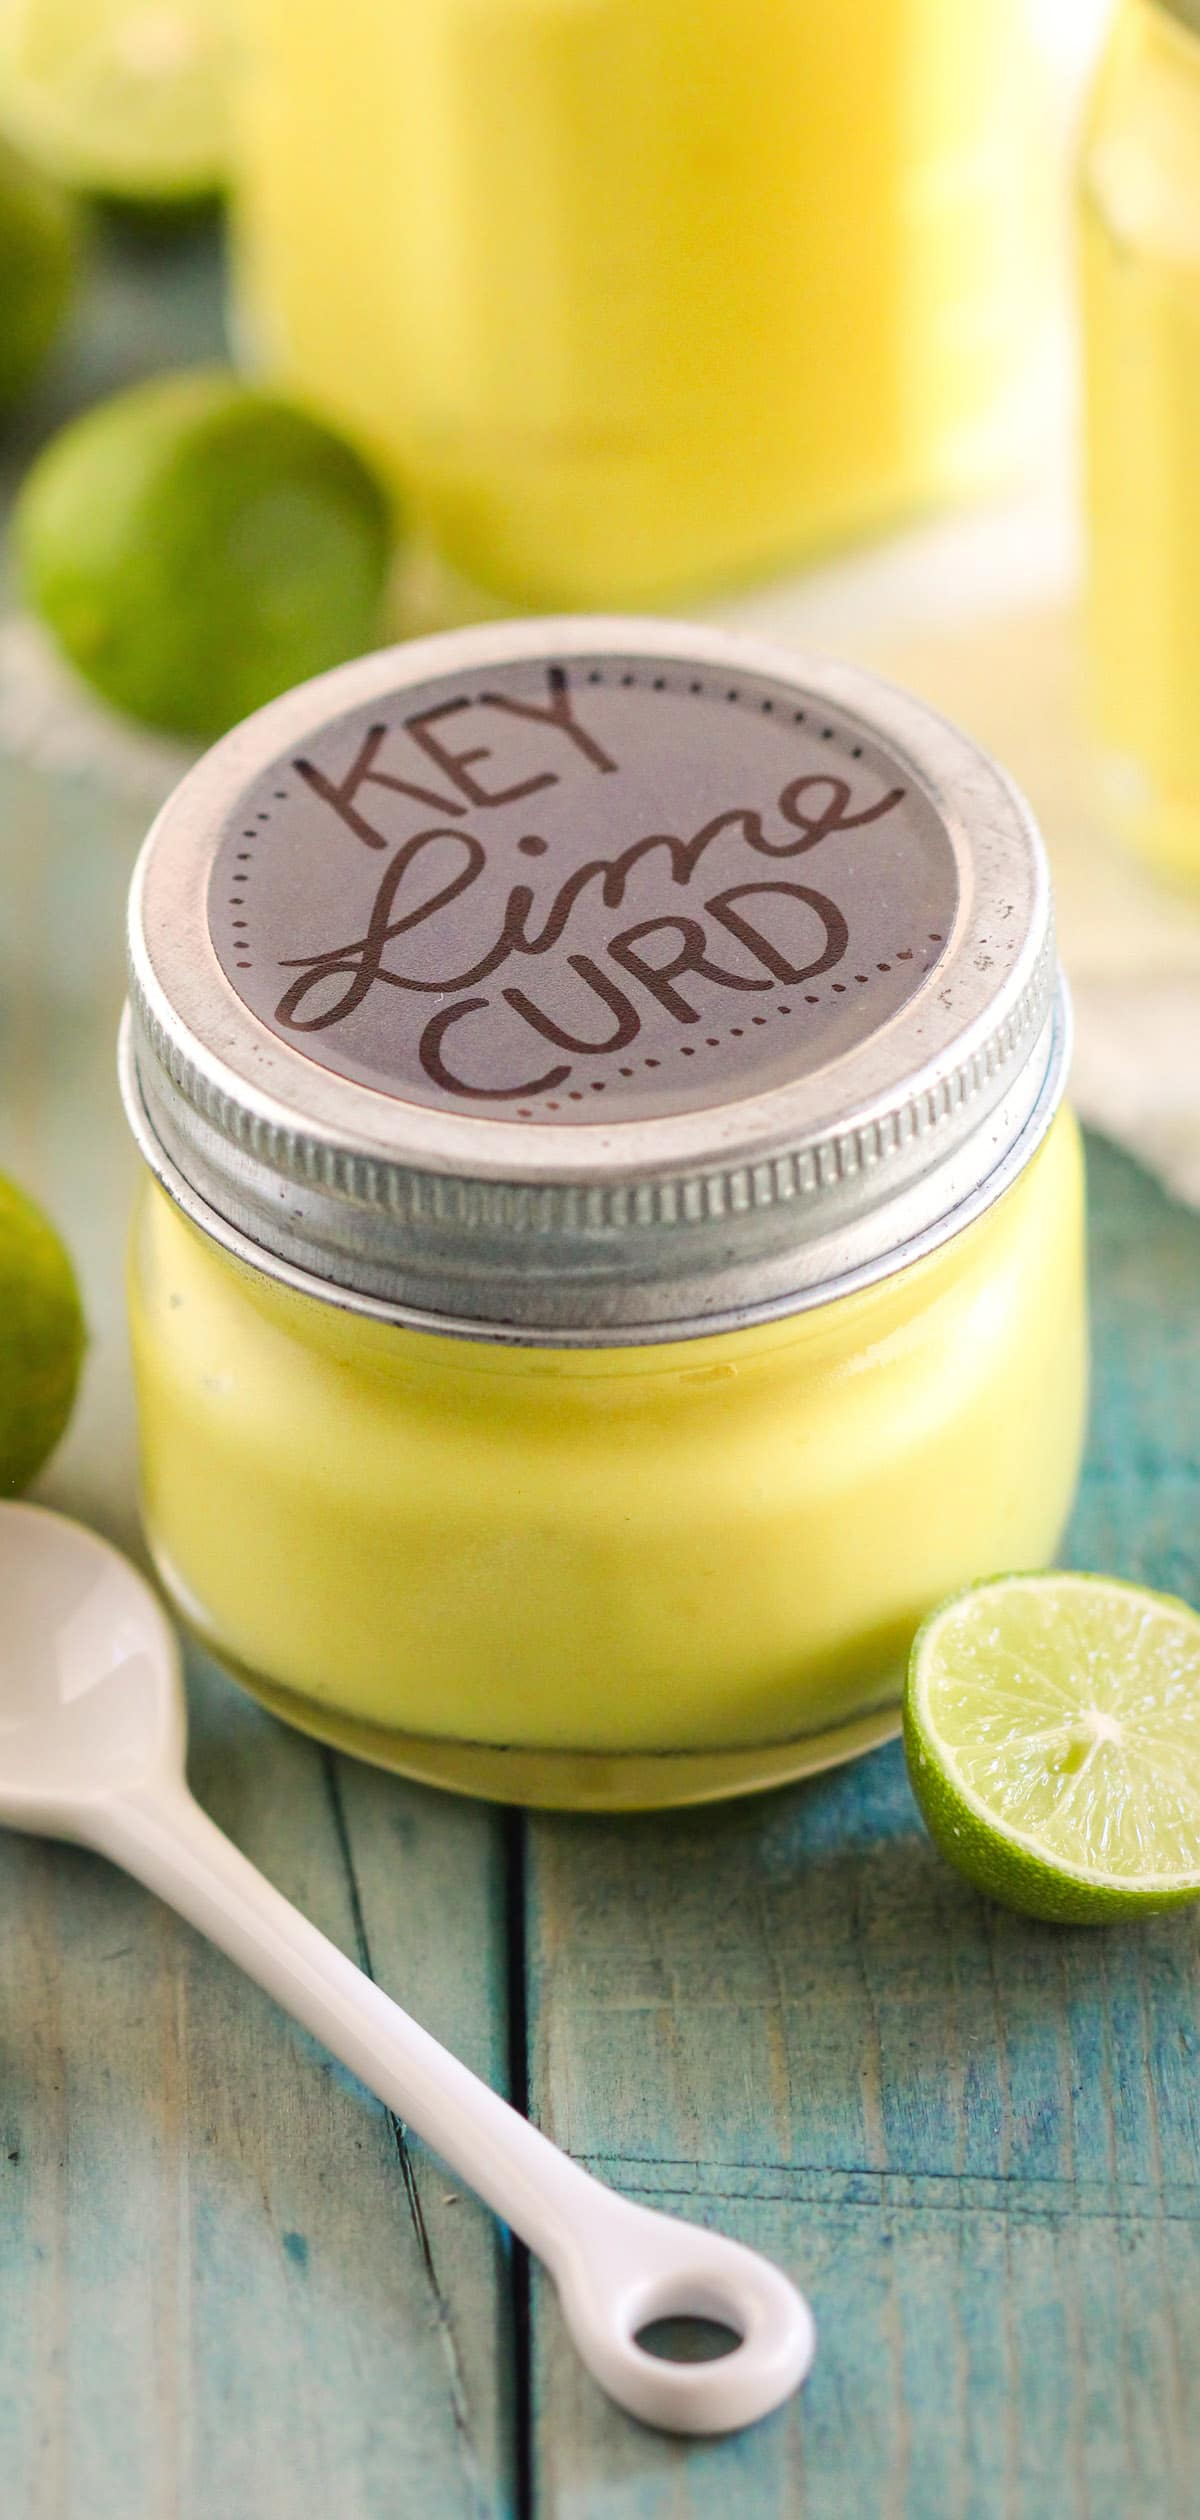 (How to Make Key Lime Curd) This Healthy Vegan Key Lime Curd is creamy, sweet, tart, and delicious. You'd never know it's sugar free, low carb, gluten free, dairy free, and vegan! It's summer in a spoonful. Healthy Dessert Recipes with sugar free, low calorie, low fat, low carb, high protein, gluten free, dairy free, vegan, and raw options at the Desserts With Benefits Blog (www.DessertsWithBenefits.com)